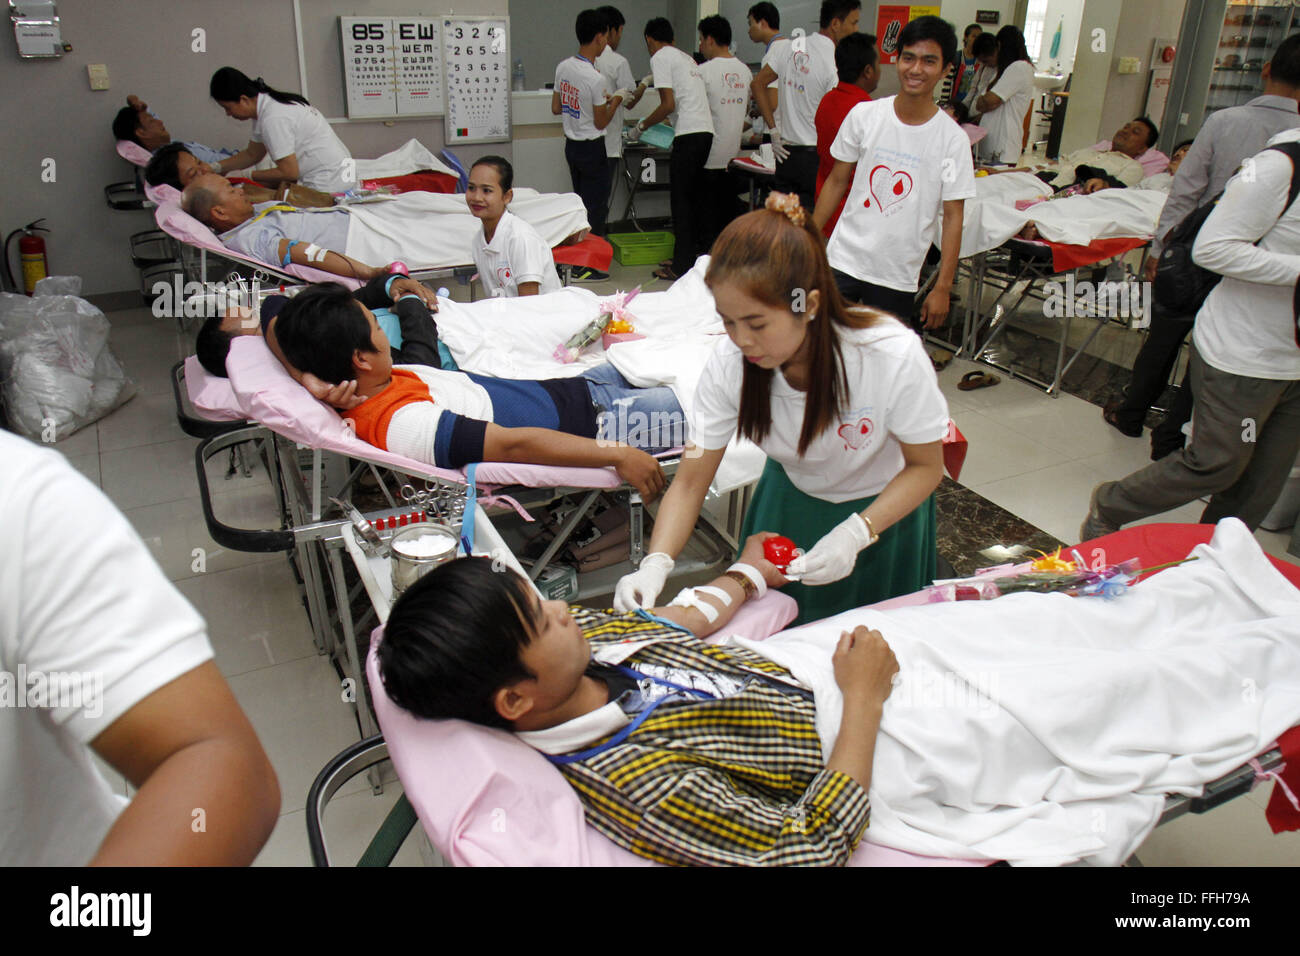 Phnom Penh, Cambodia. 14th Feb, 2016. People donate blood in Phnom Penh, Cambodia, Feb. 14, 2016. The Cambodia's - Stock Image